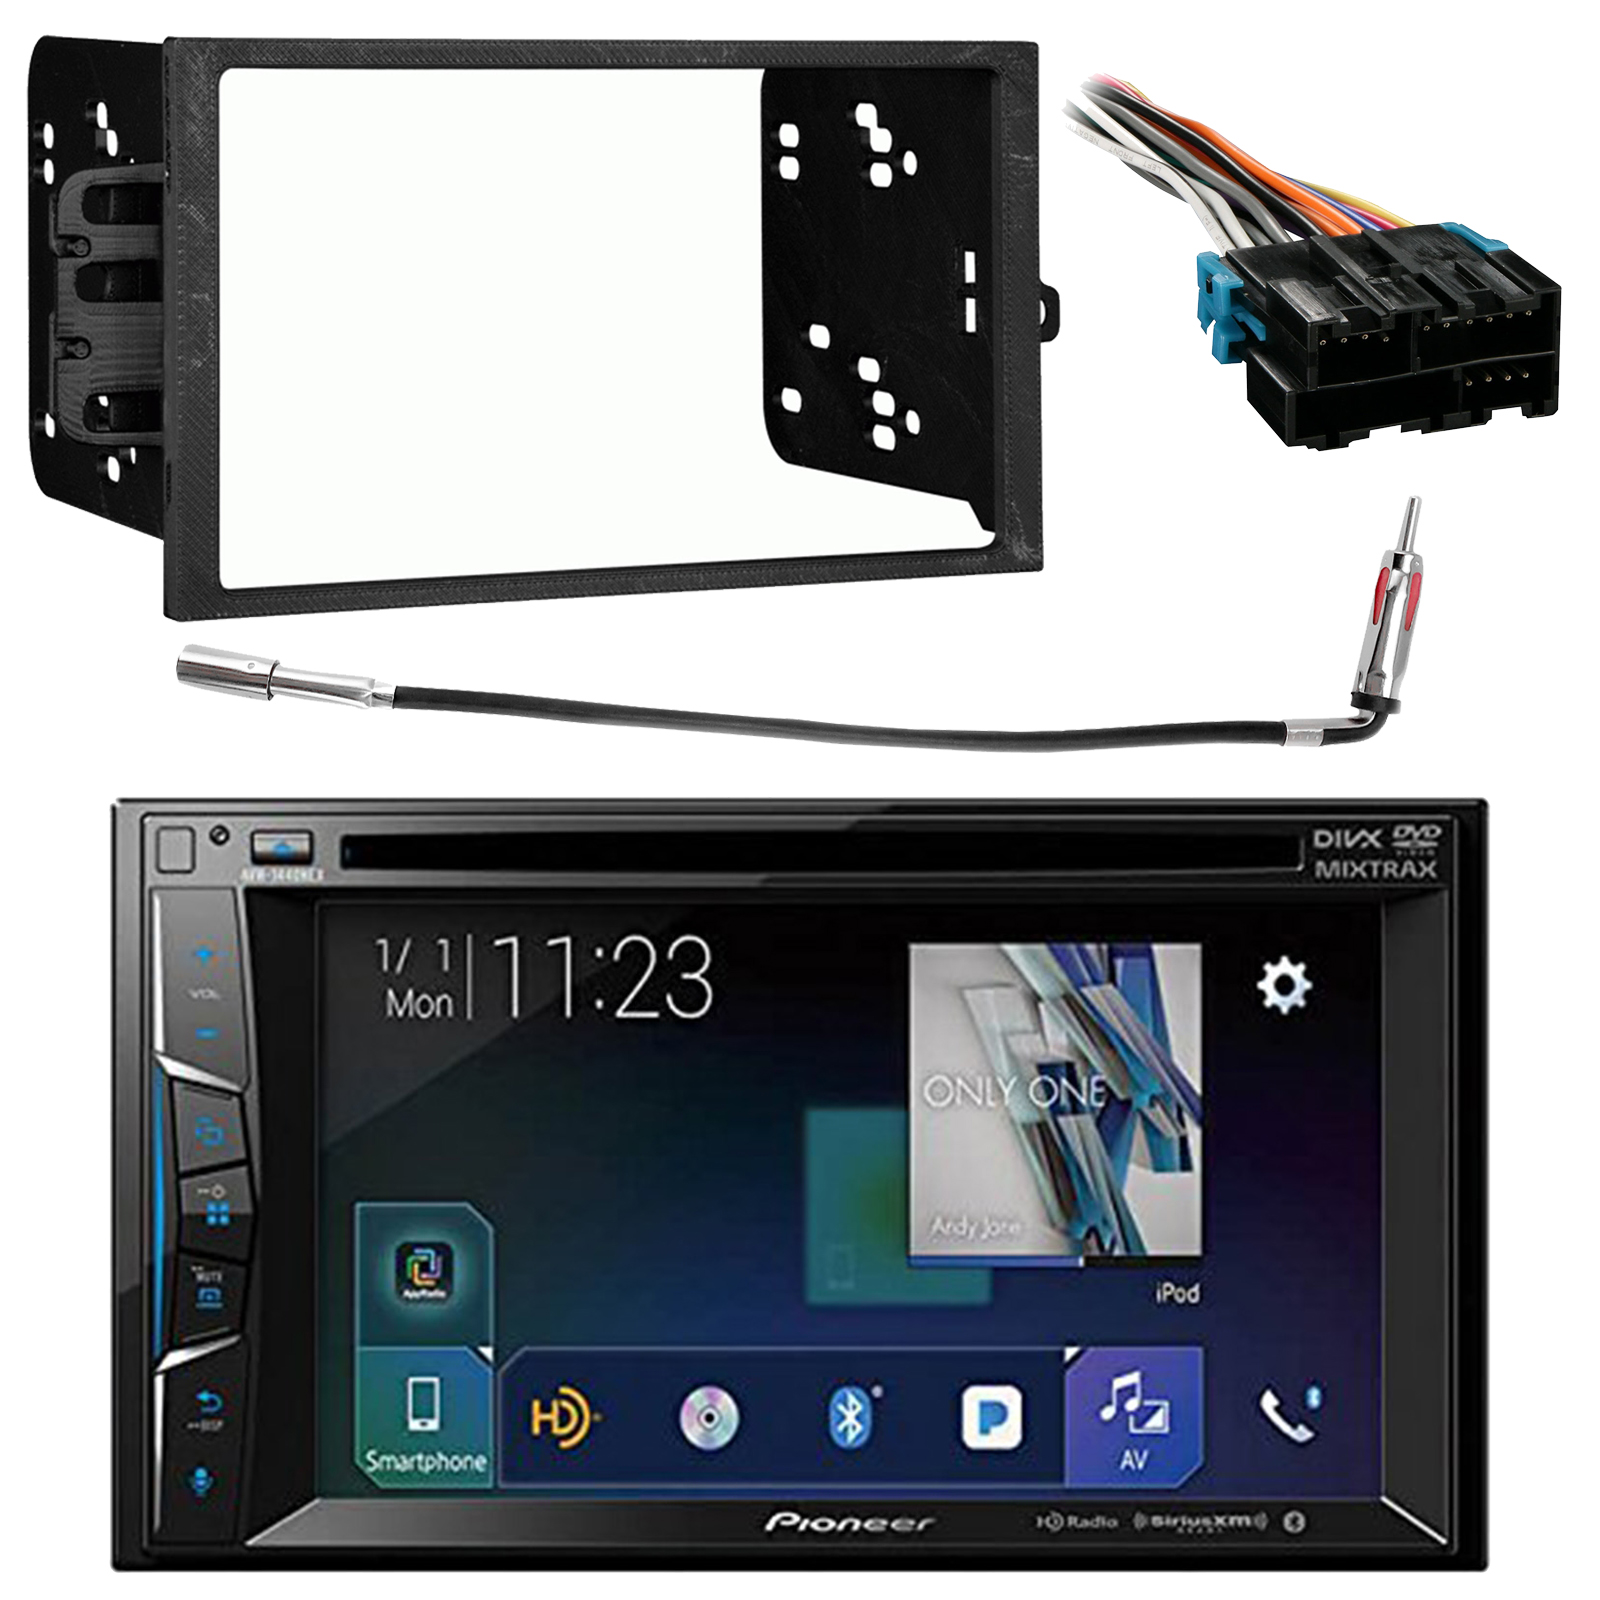 Details about Pioneer Double Din Bluetooth Receiver, 94-12 GM Dash on 1987 chevy dash harness, chevy suburban wire harness, 1971 chevelle dash harness, dash radio, 1967 chevrolet van dash harness, 99 firebird dash harness, dash gauges,